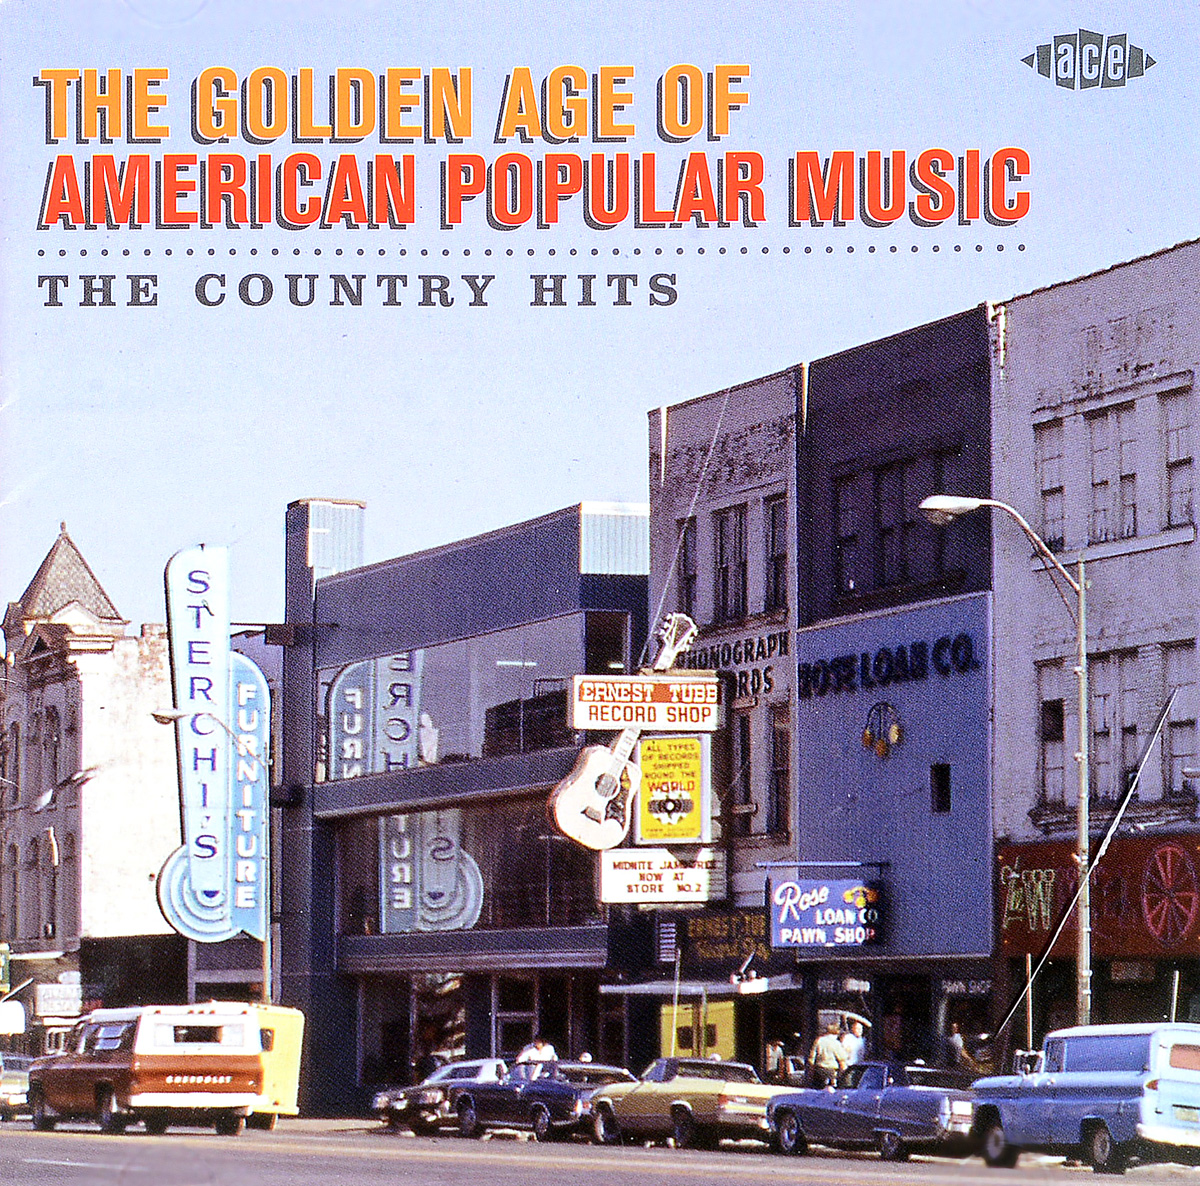 лучшая цена The Golden Age Of American Popular Music - The Country Hits